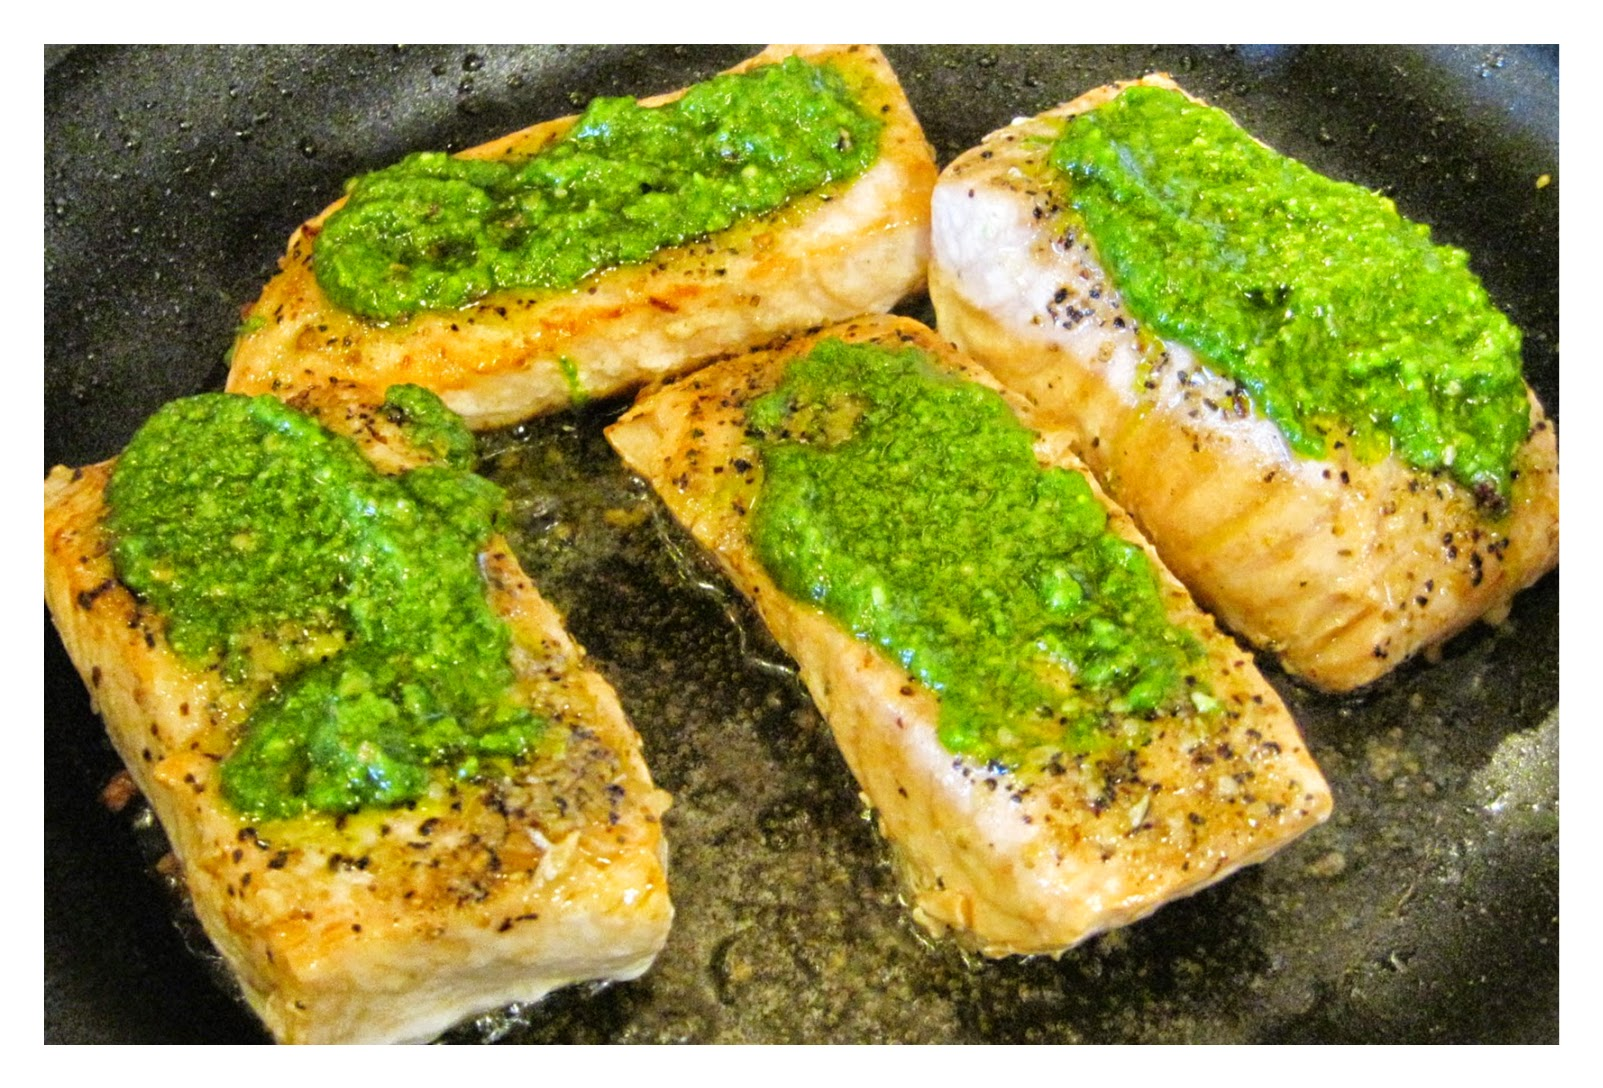 Pesto Sauce recipe image